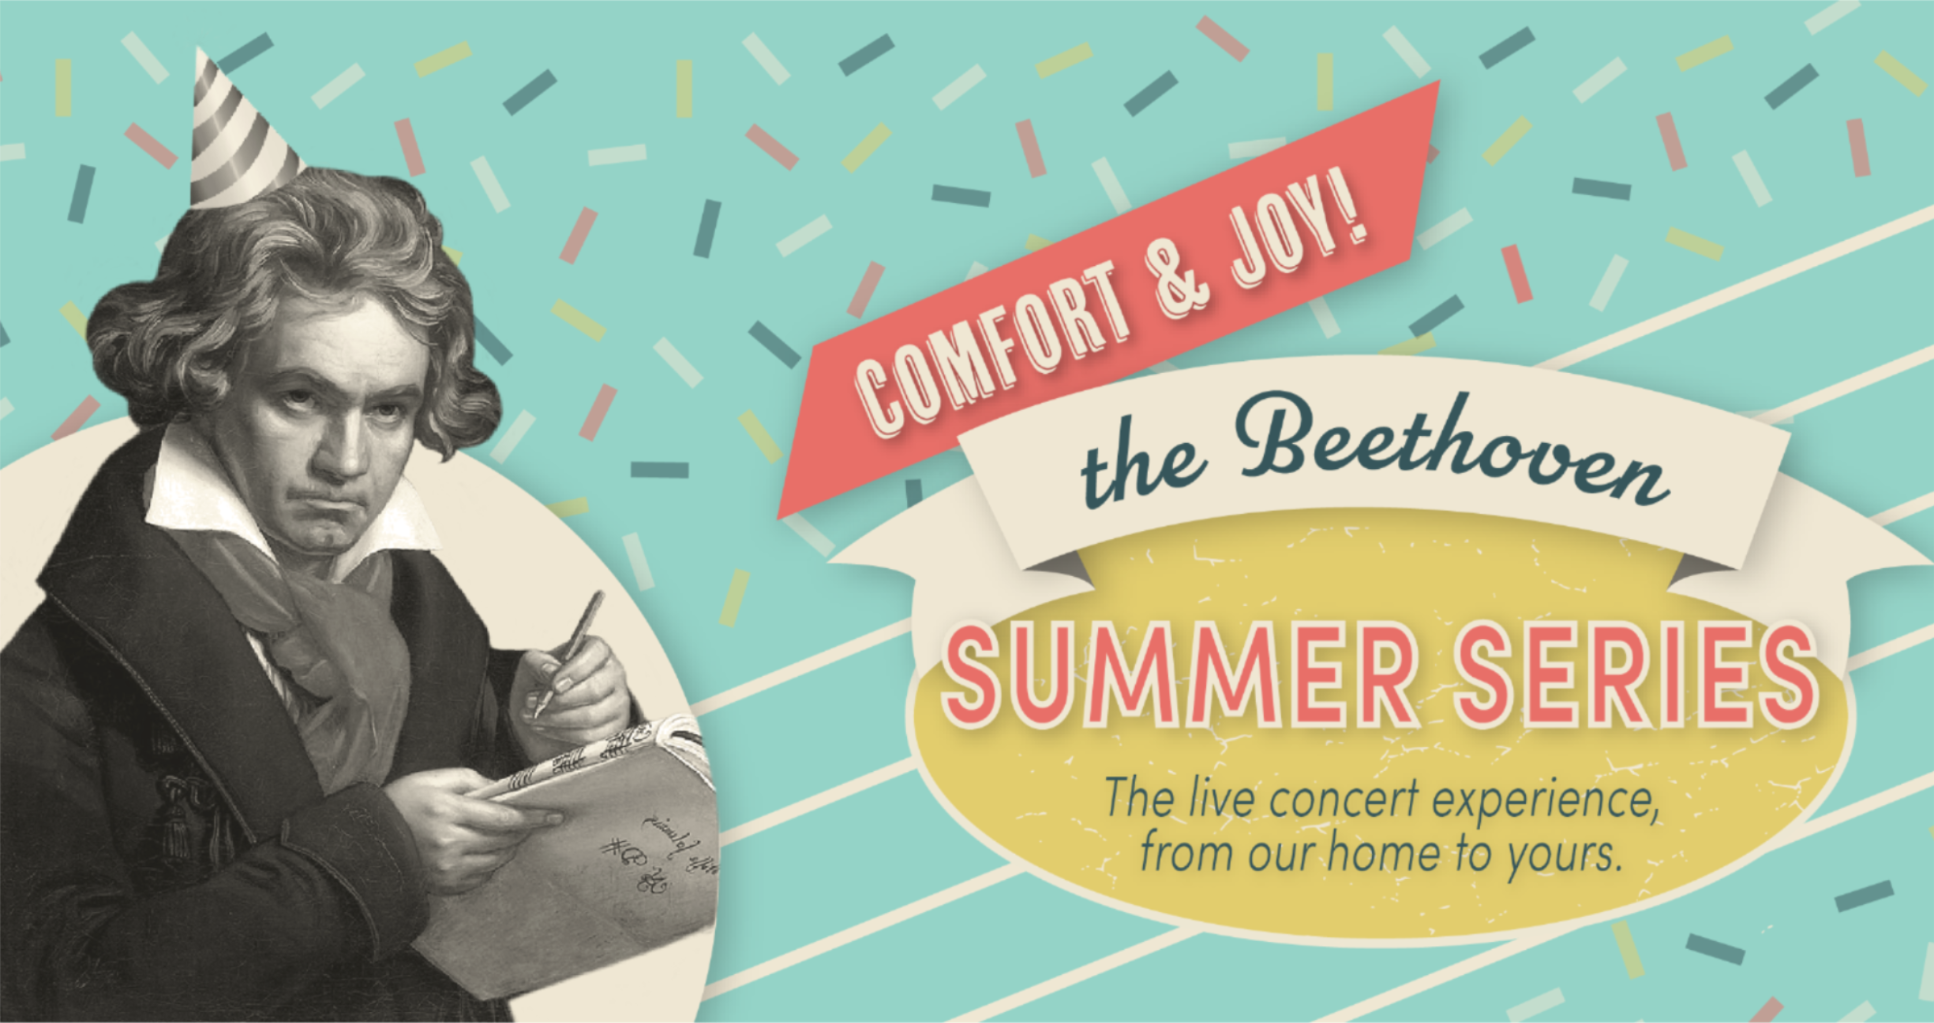 Comfort and Joy! – the Beethoven Summer Series